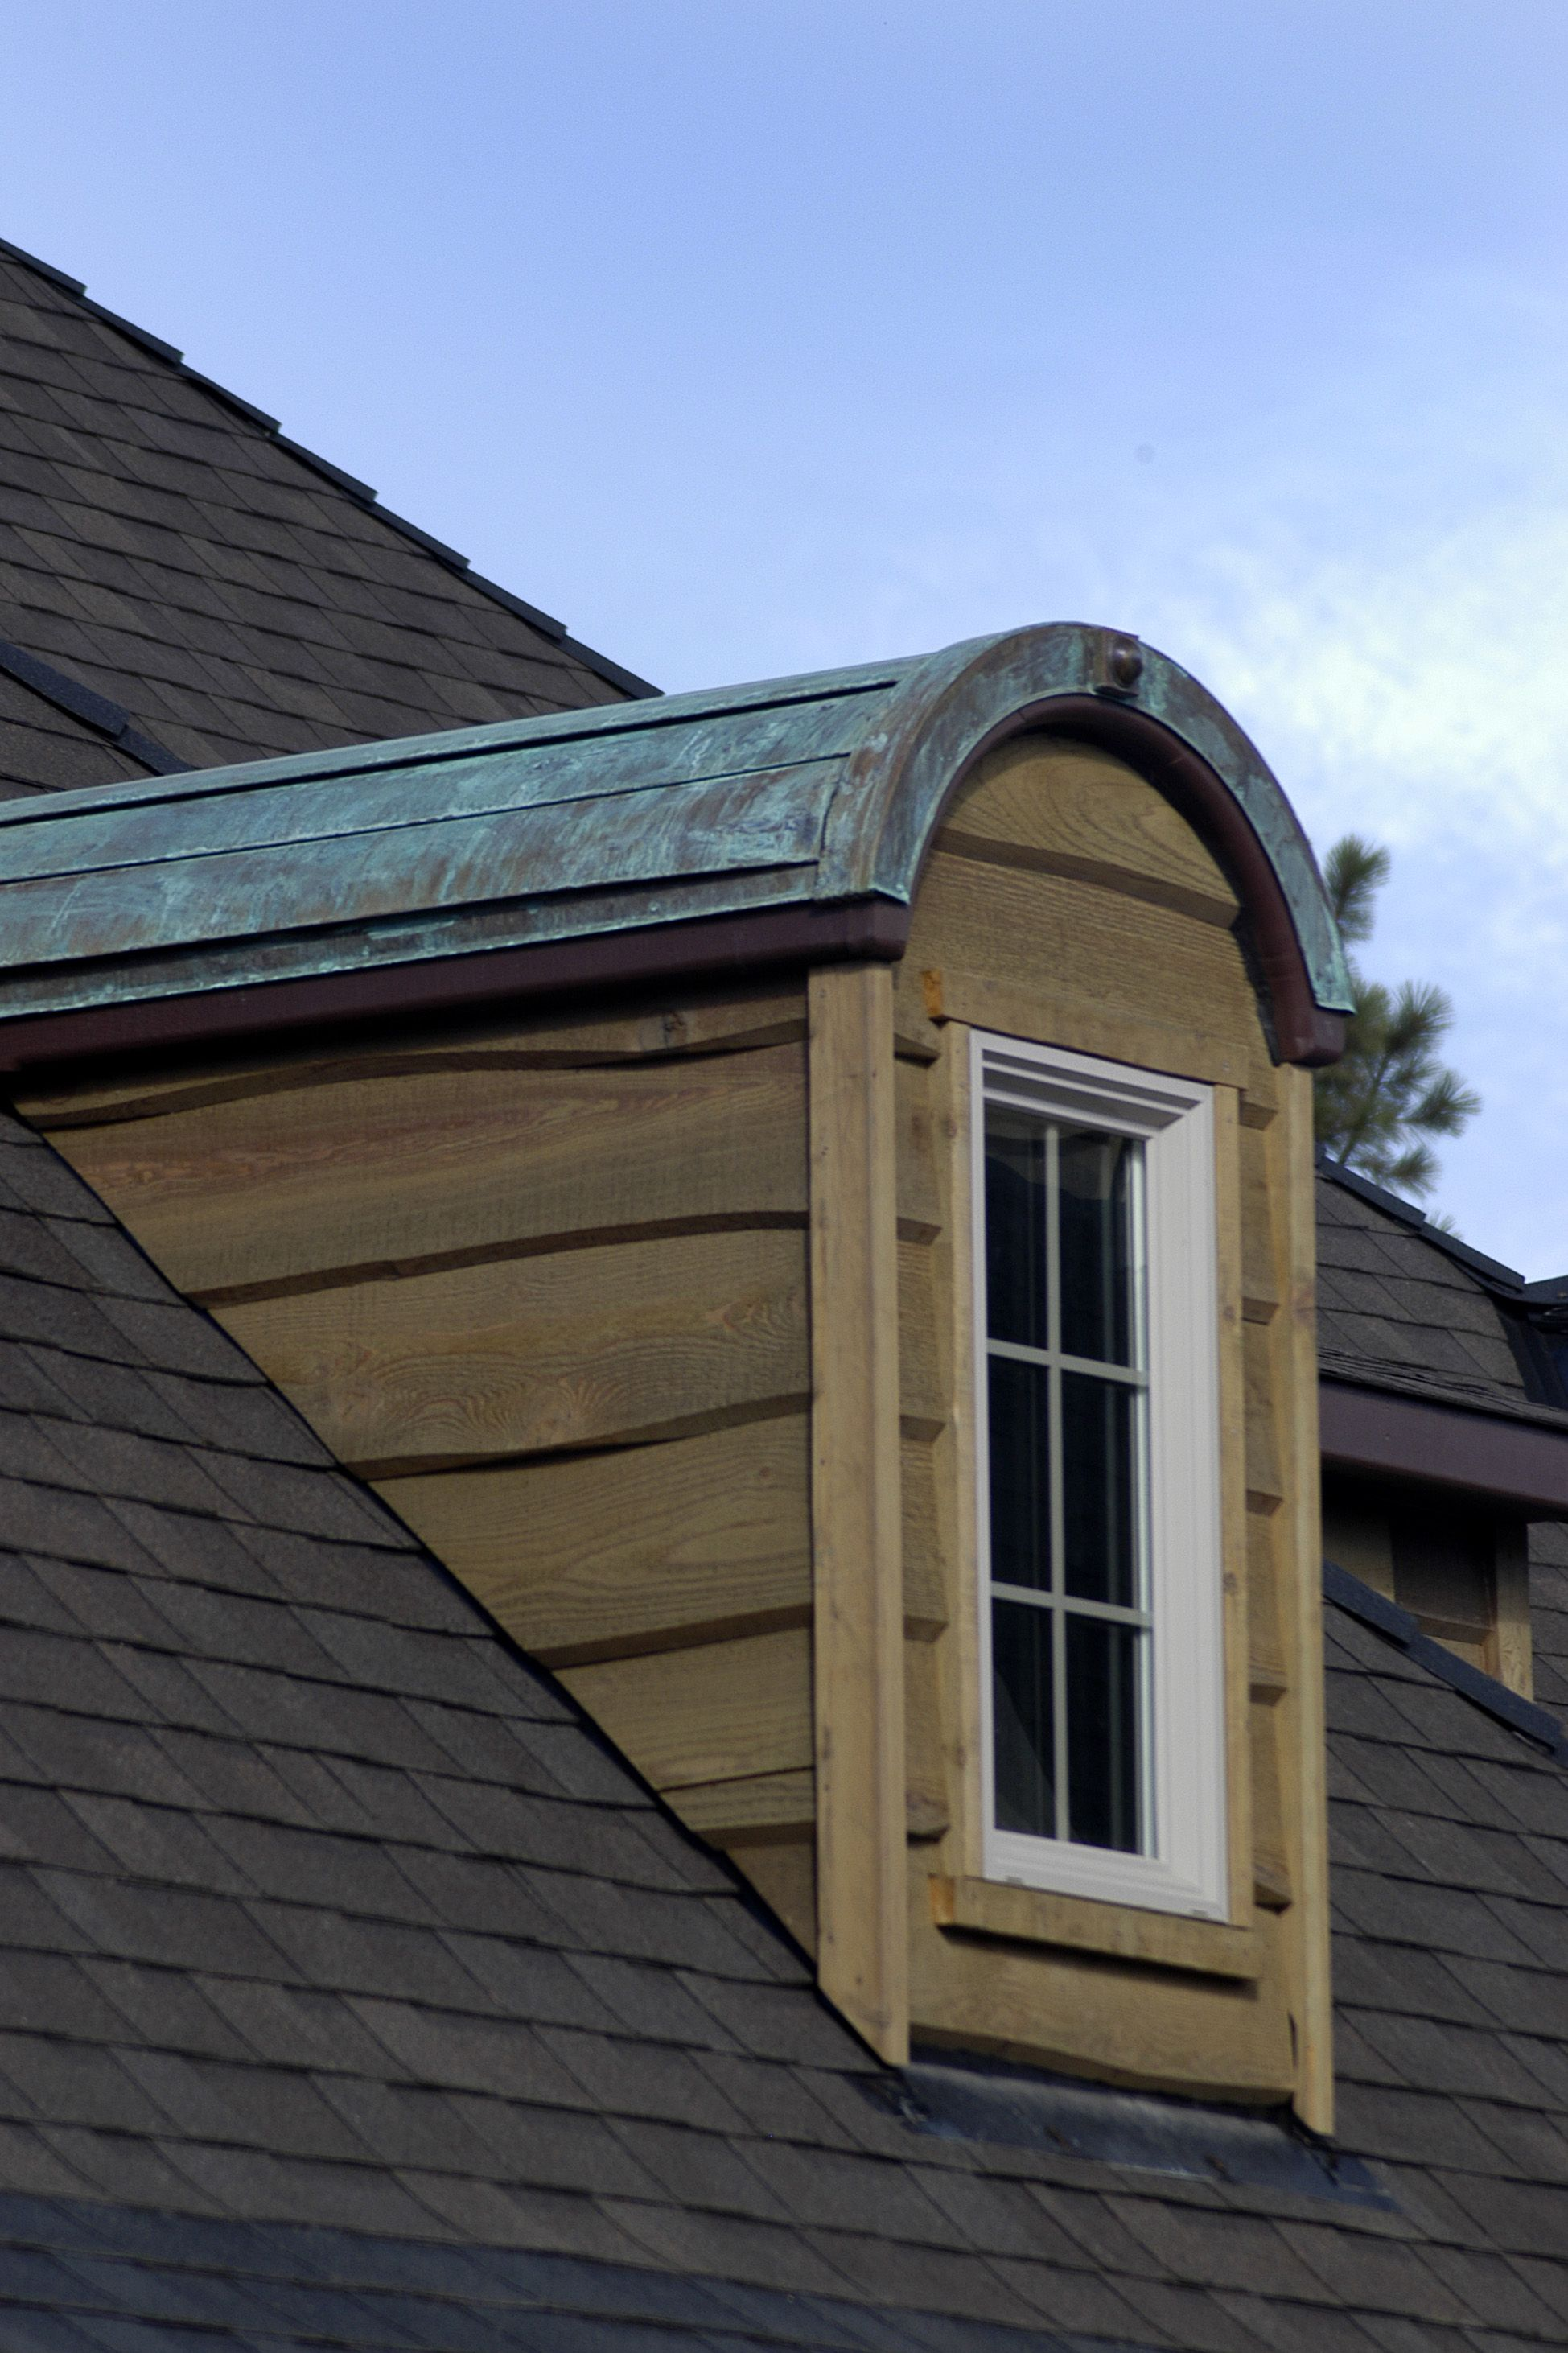 Copper Dormer Detailing And Scurl Siding Built By Jess Alway Homes Bend Oregon Exterior House Remodel French Buildings Copper Roof